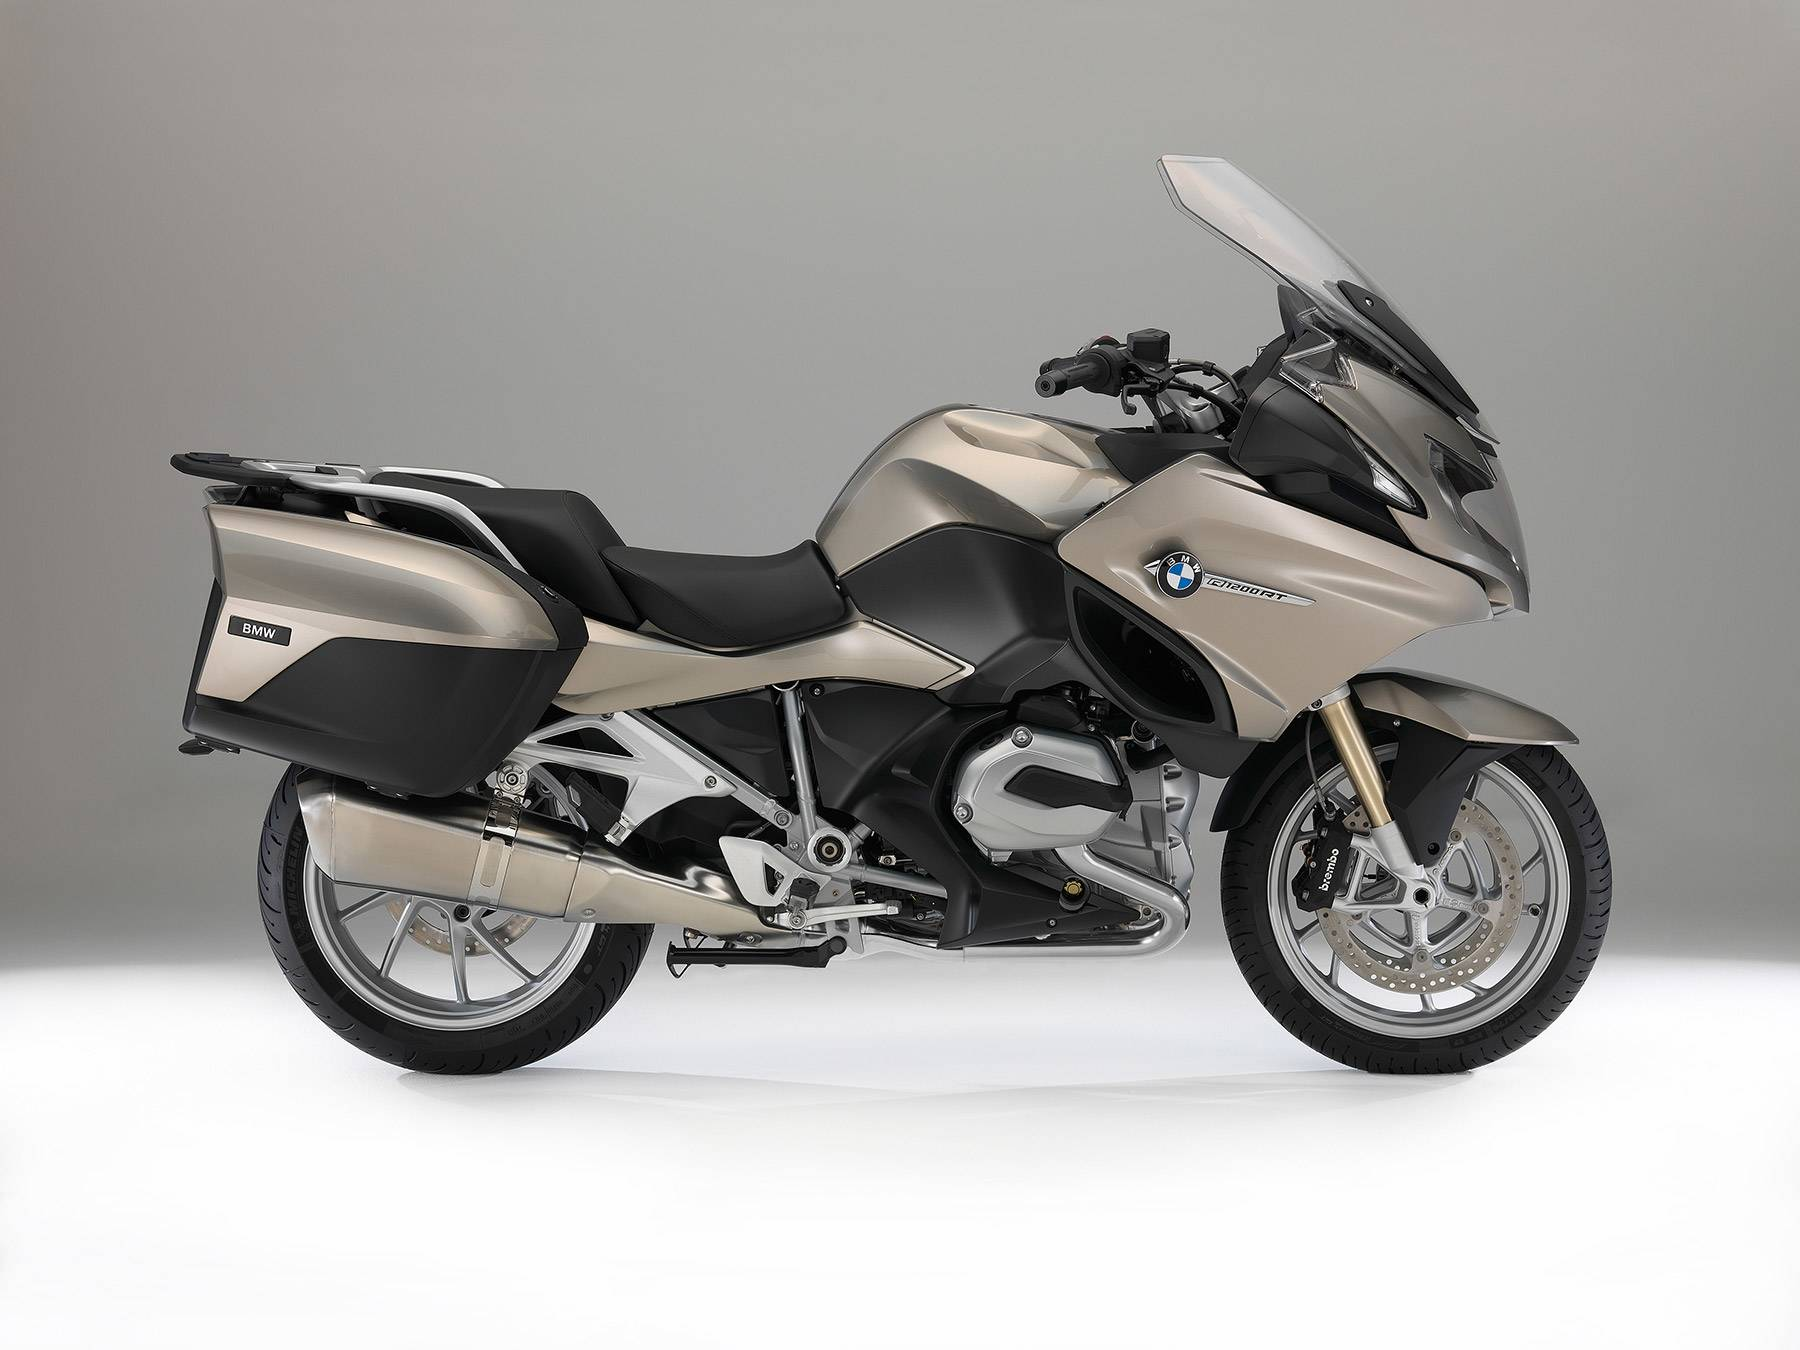 https://s3-eu-west-1.amazonaws.com/cdn.motorbikemag.es/wp-content/uploads/2015/12/BMW-R-1200-RT-Estudio.jpg